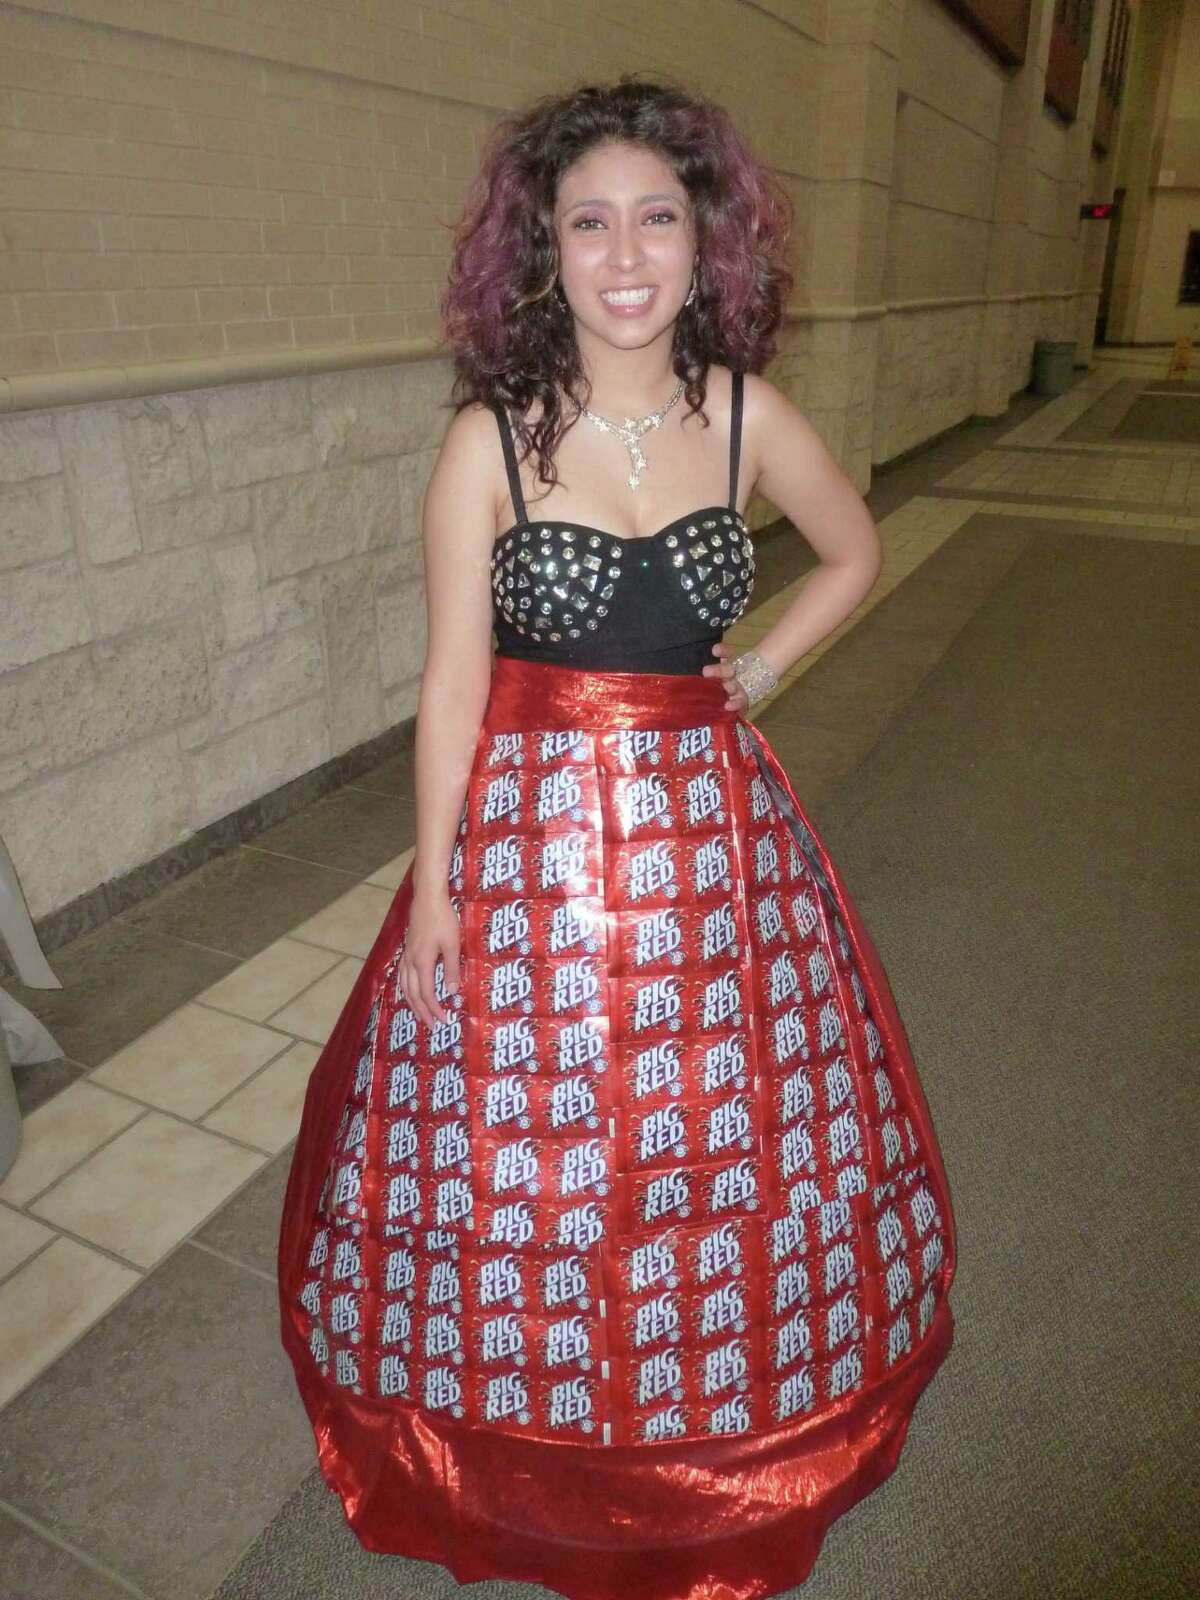 Left, Melissa Ronquillo models Wagner classmate Ehrika Watson's Big Red dress, fashioned from more than 200 soda cans. Right, Kimi Fernandez steps out in her paper plate wedding dress in the May 2 Wagner Recycled Fashion Show.